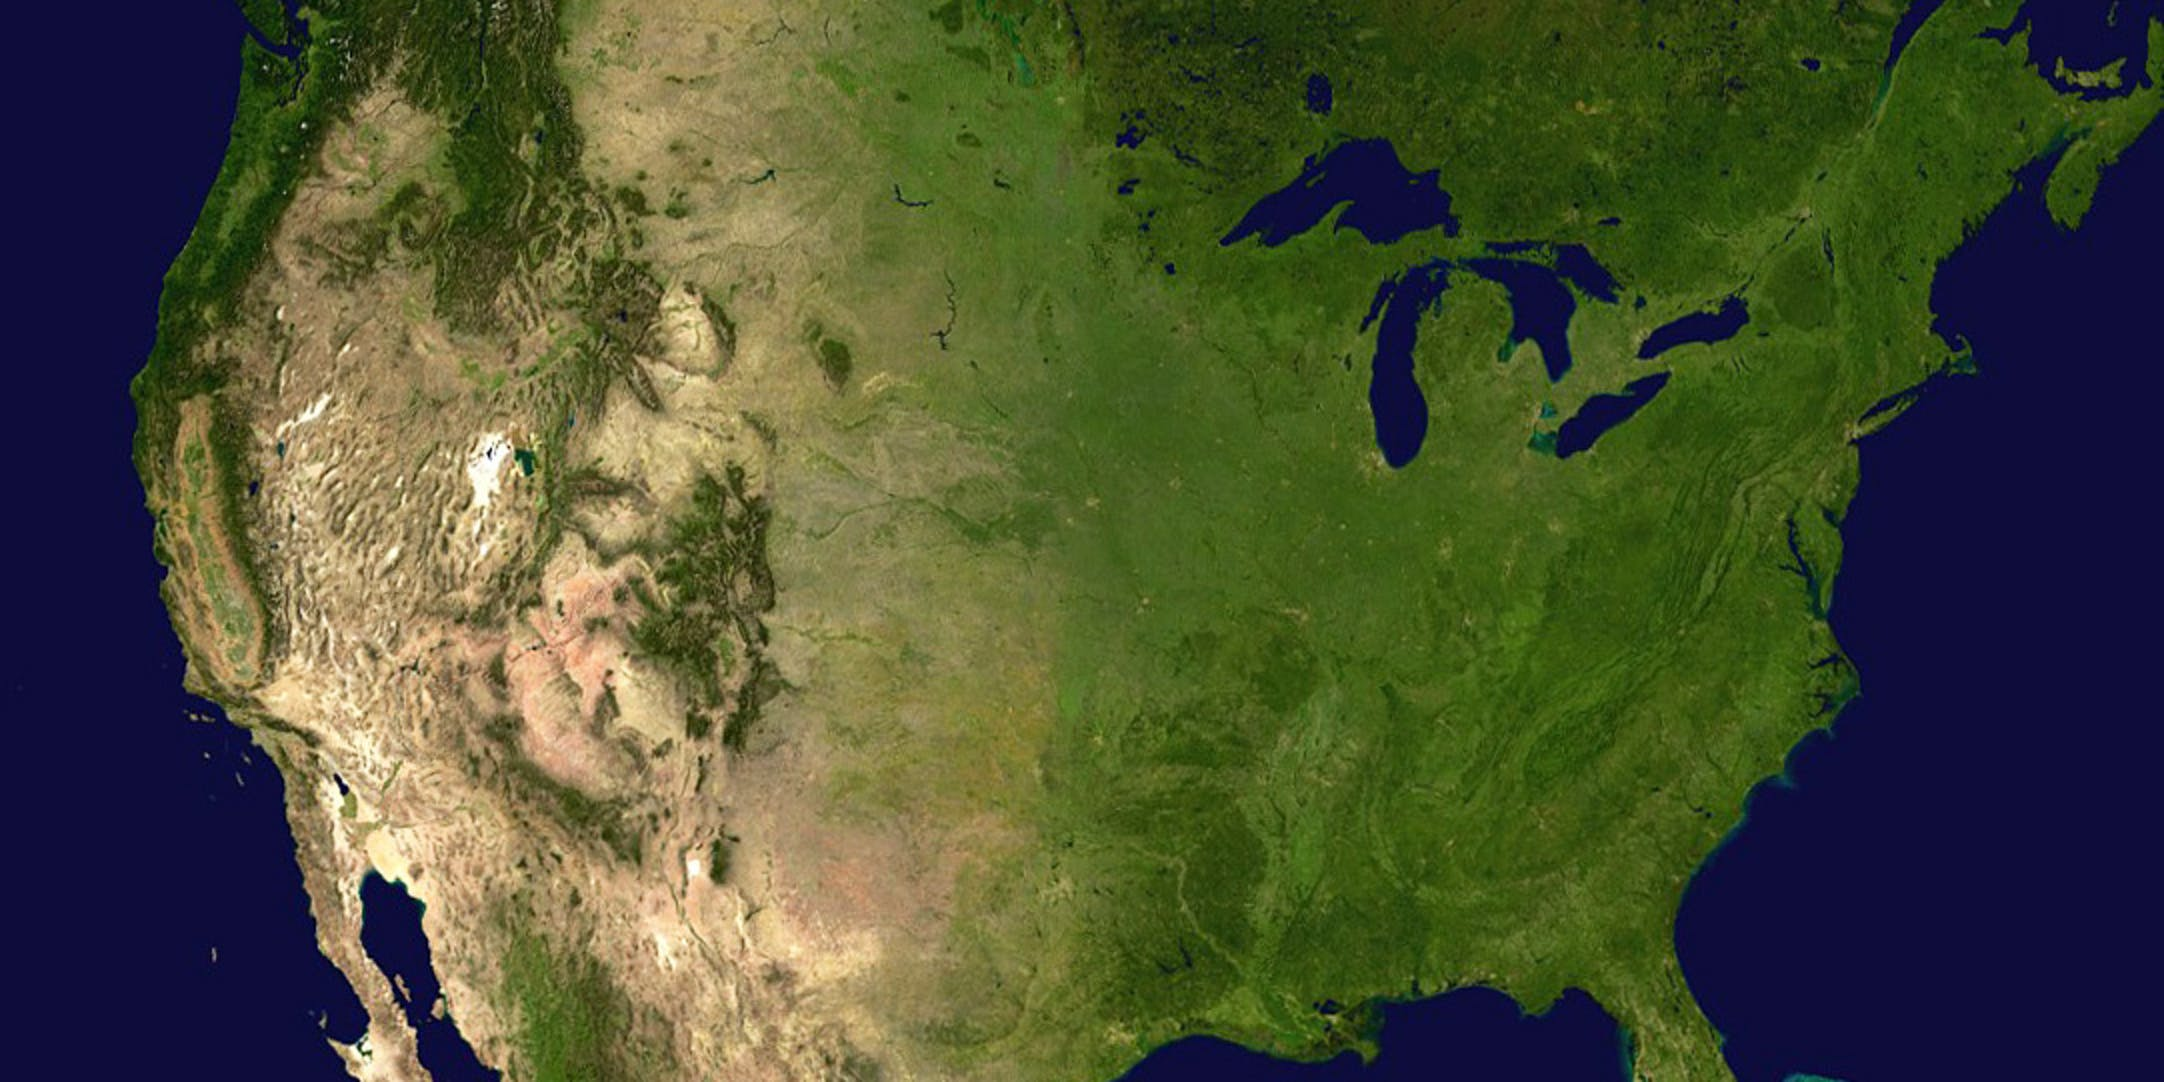 United States satellite map North America climate change denialism